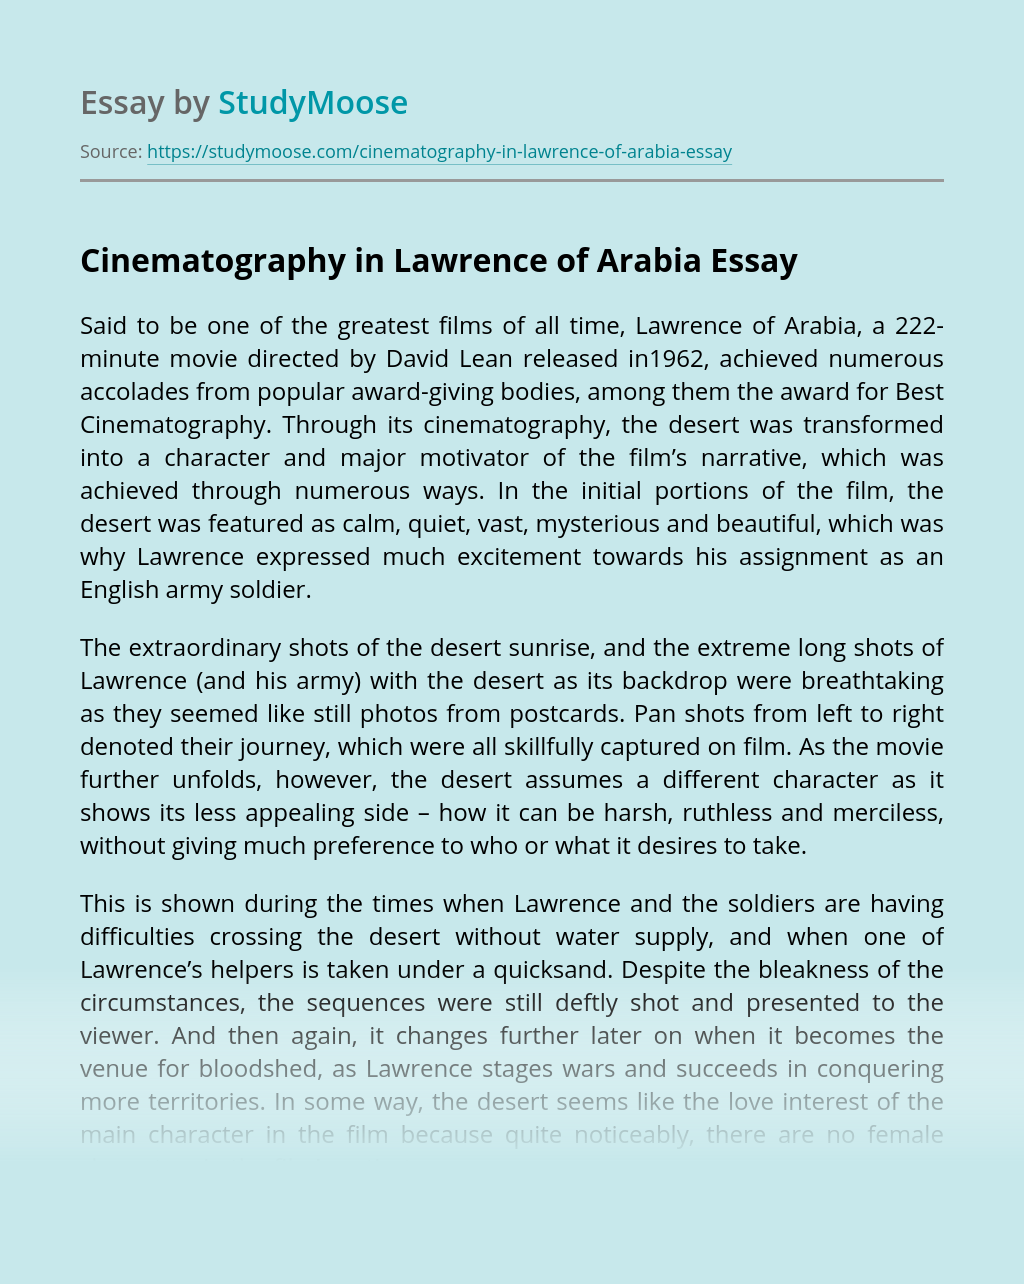 Cinematography in Lawrence of Arabia